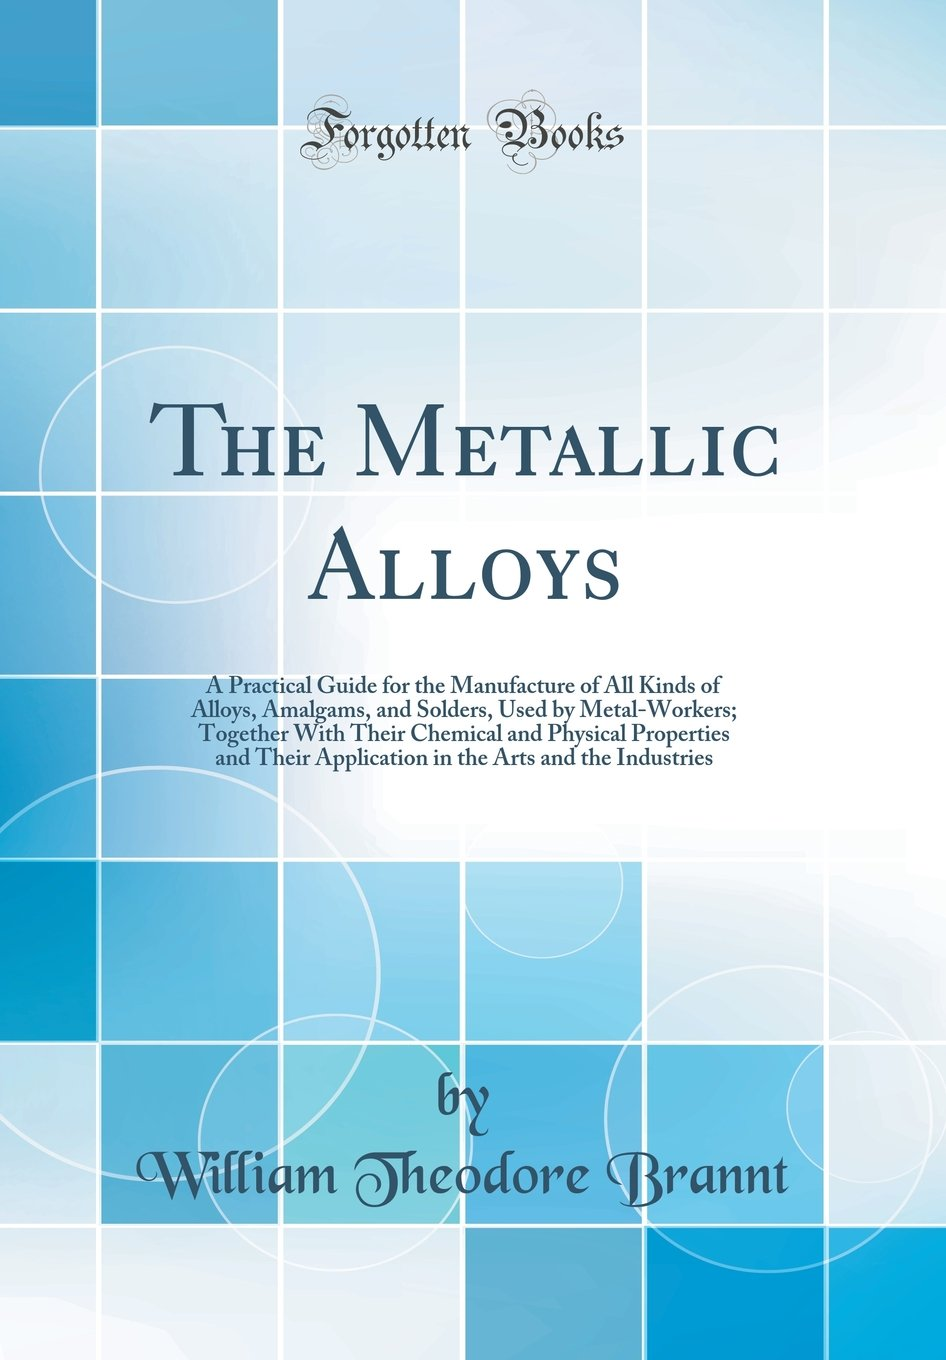 The Metallic Alloys: A Practical Guide for the Manufacture of All Kinds of Alloys, Amalgams, and Solders, Used by Metal-Workers; Together With Their ... the Arts and the Industries (Classic Reprint) PDF